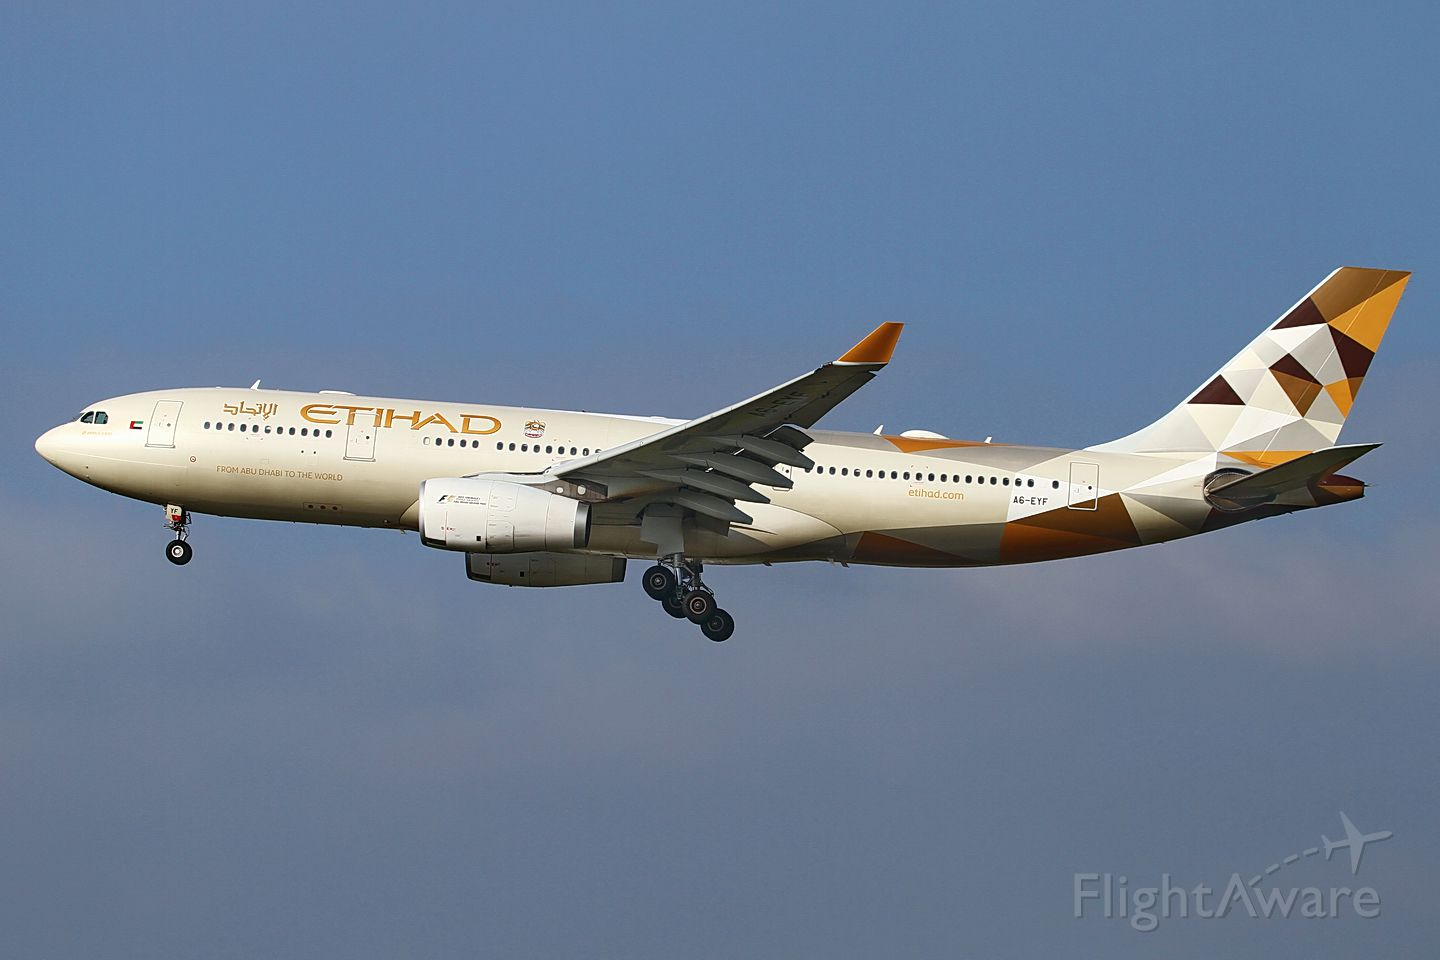 Airbus A330-200 (A6-EYF) - date: 27-Oct-2015